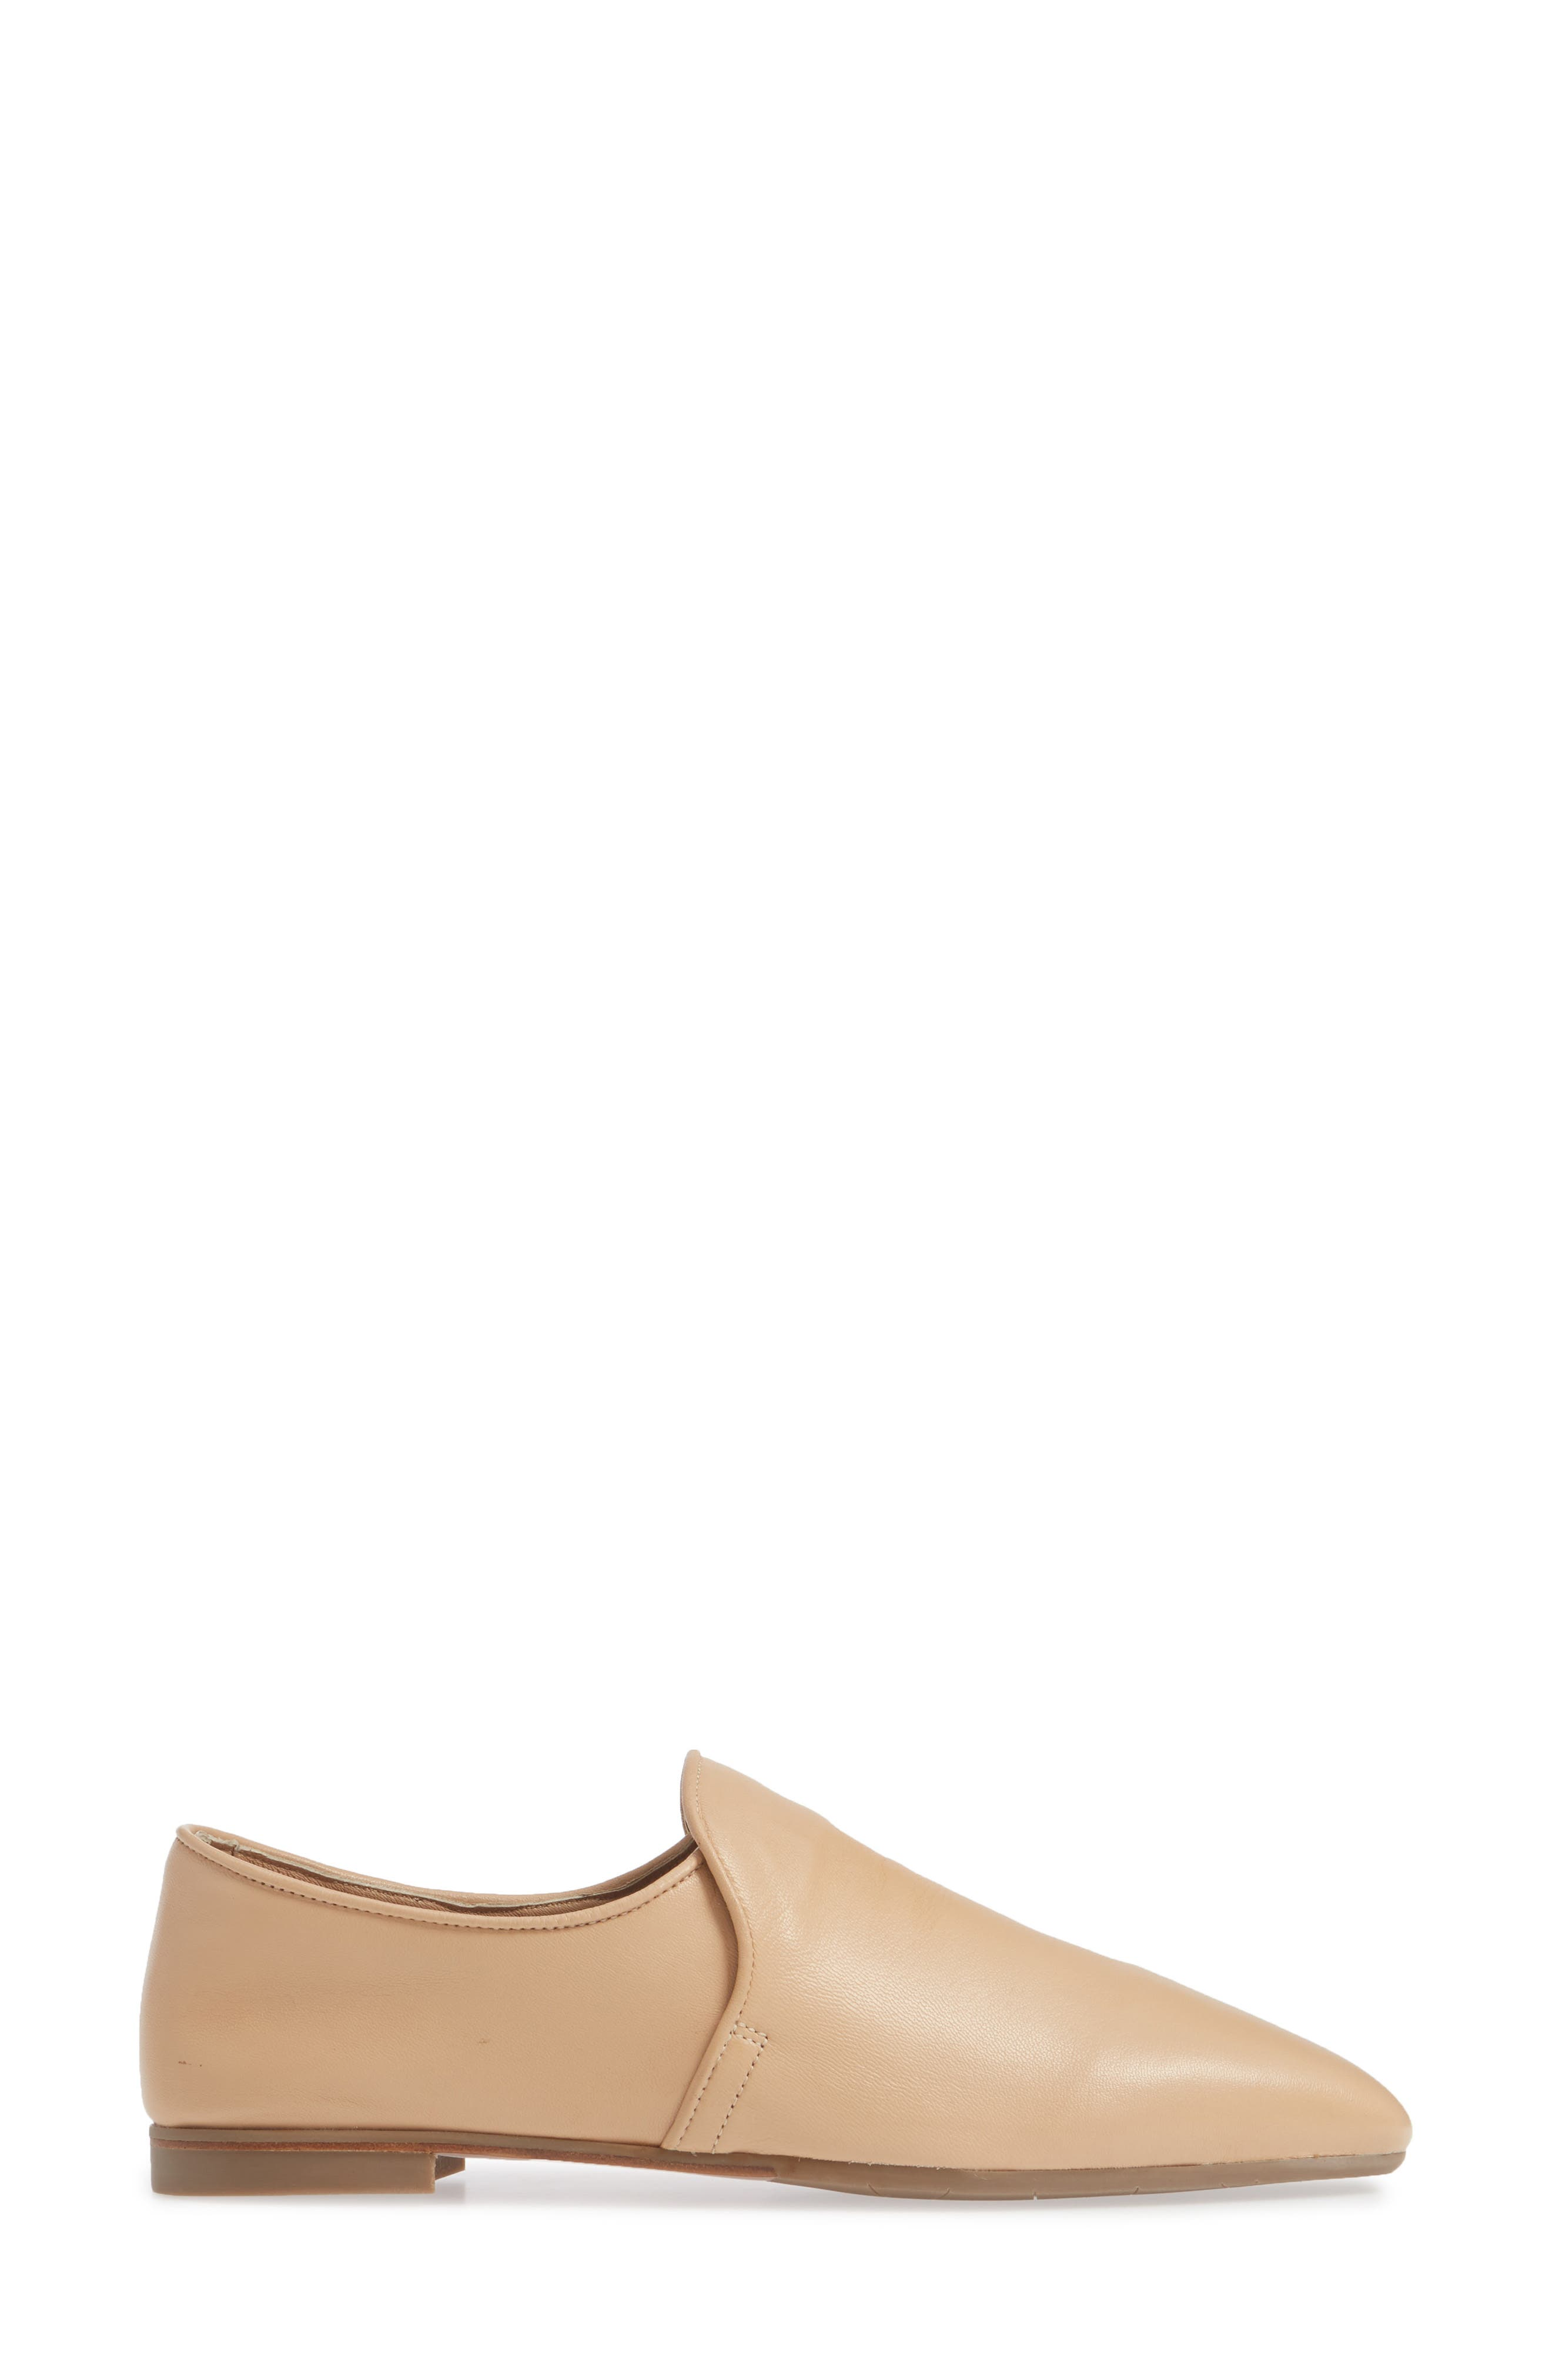 AQUATALIA, Revy Weatherporoof Loafer, Alternate thumbnail 3, color, NUDE NAPPA